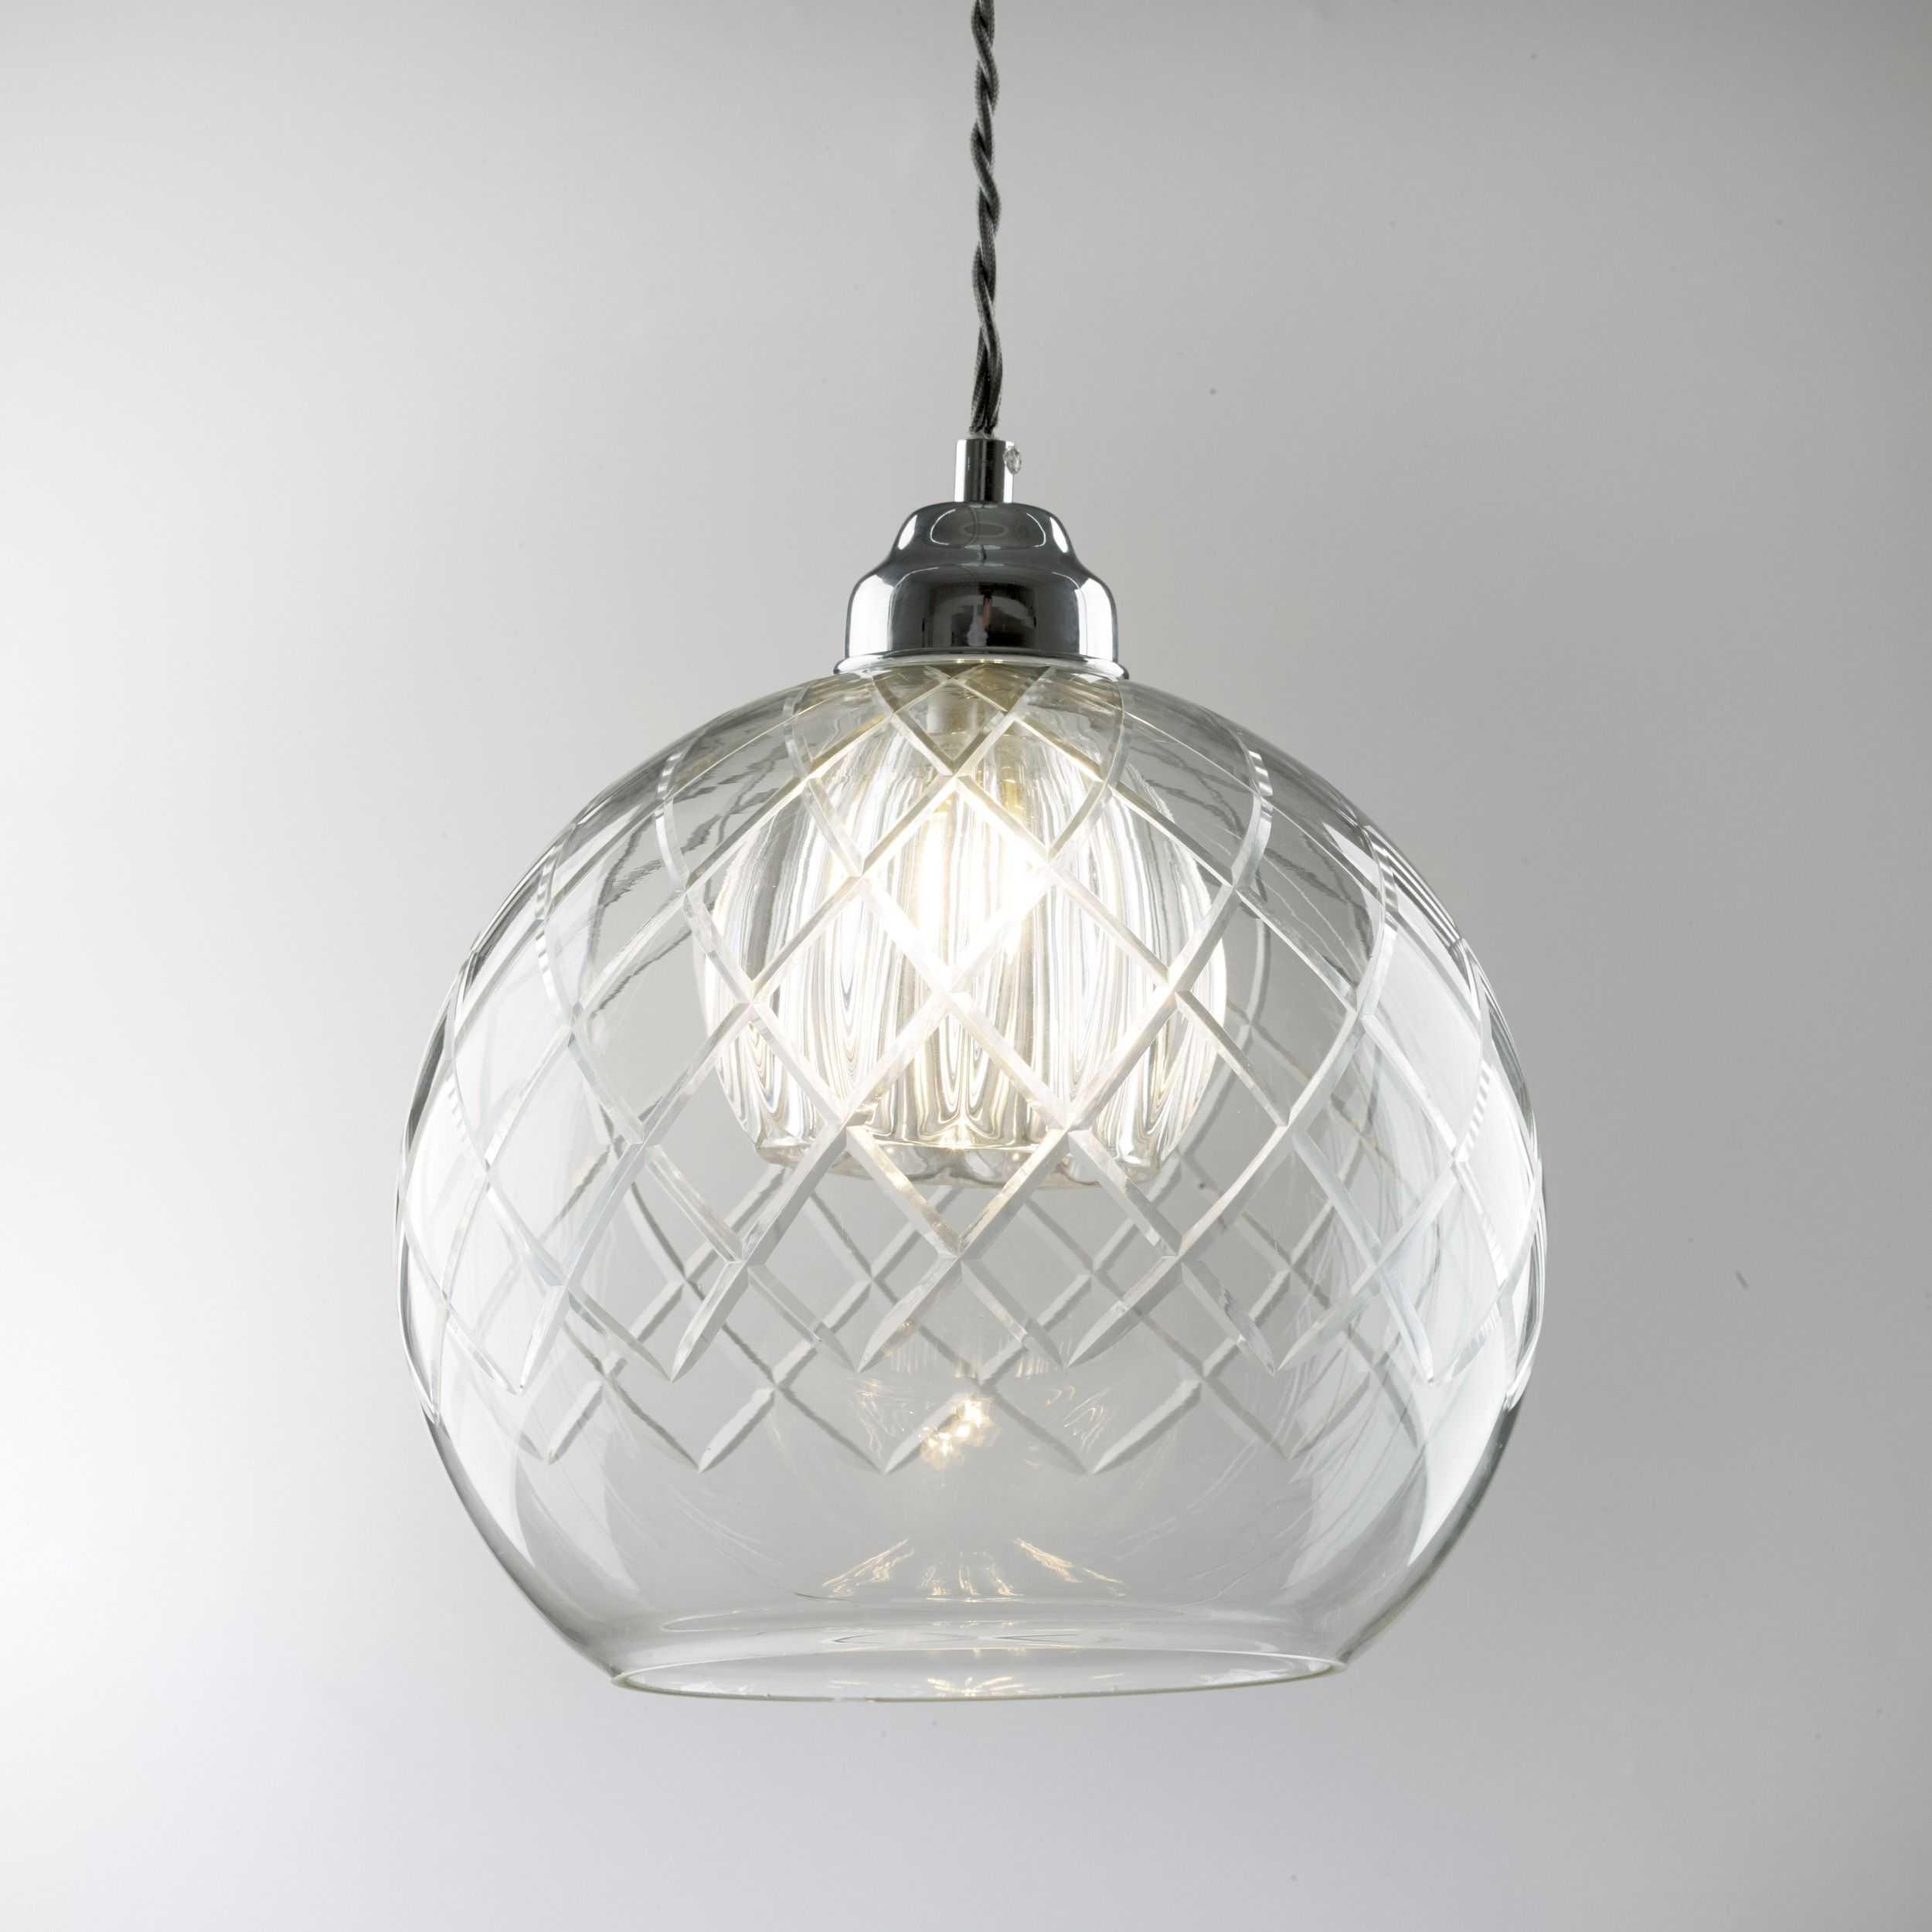 Gabby glass ceiling pendant light this stunning glass - Clear glass ceiling light ...